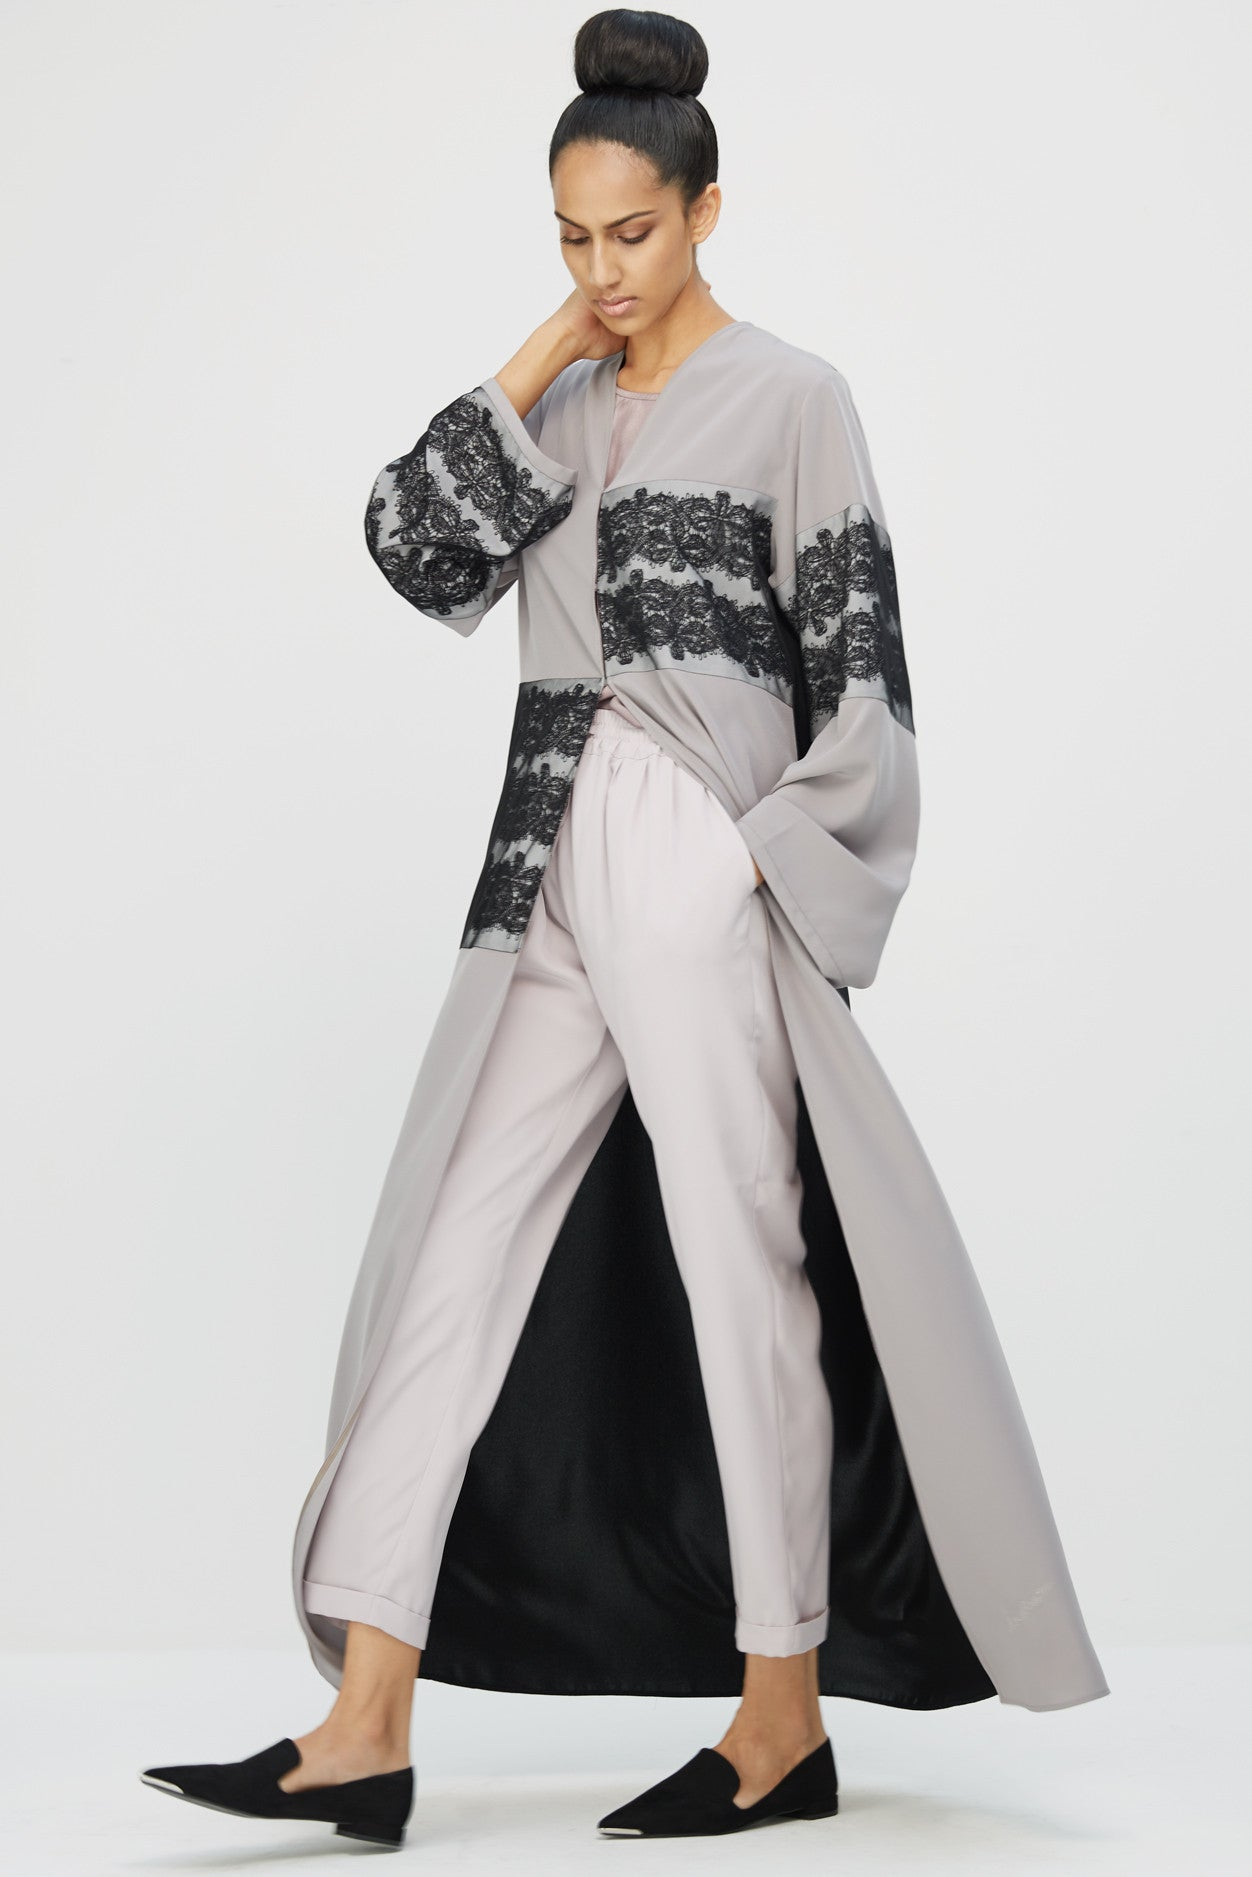 VERONIQUE  - ACR1899Z - Arabesque classic cut abaya with multiple lines of graphic lace  on front body and sleeves.